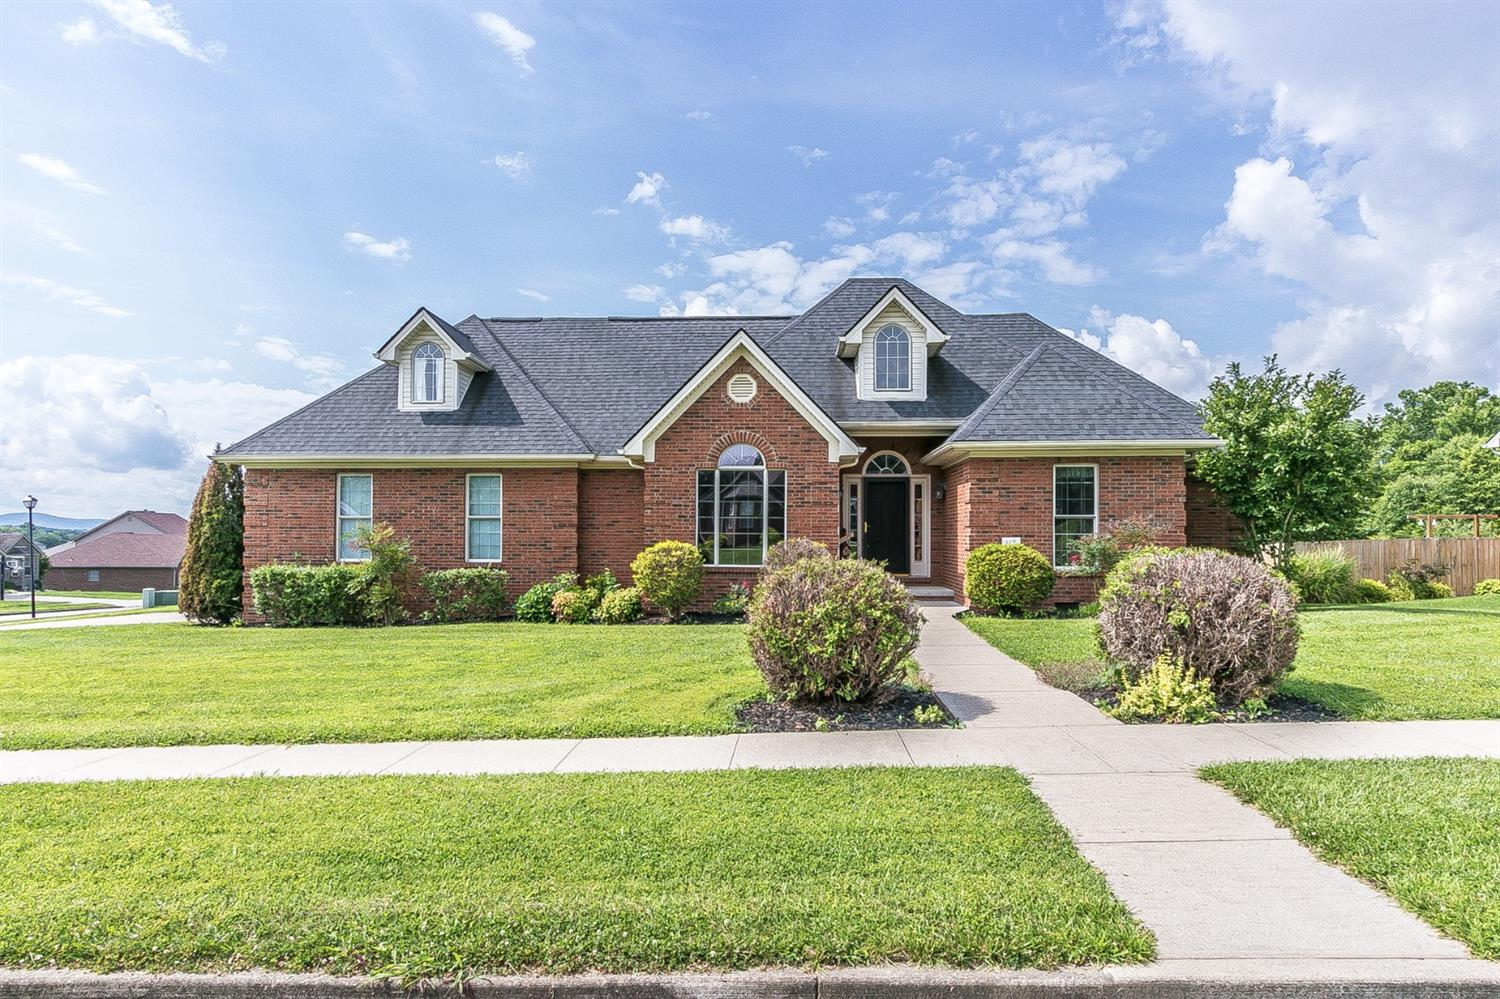 Beaumont Subdivision Berea KY